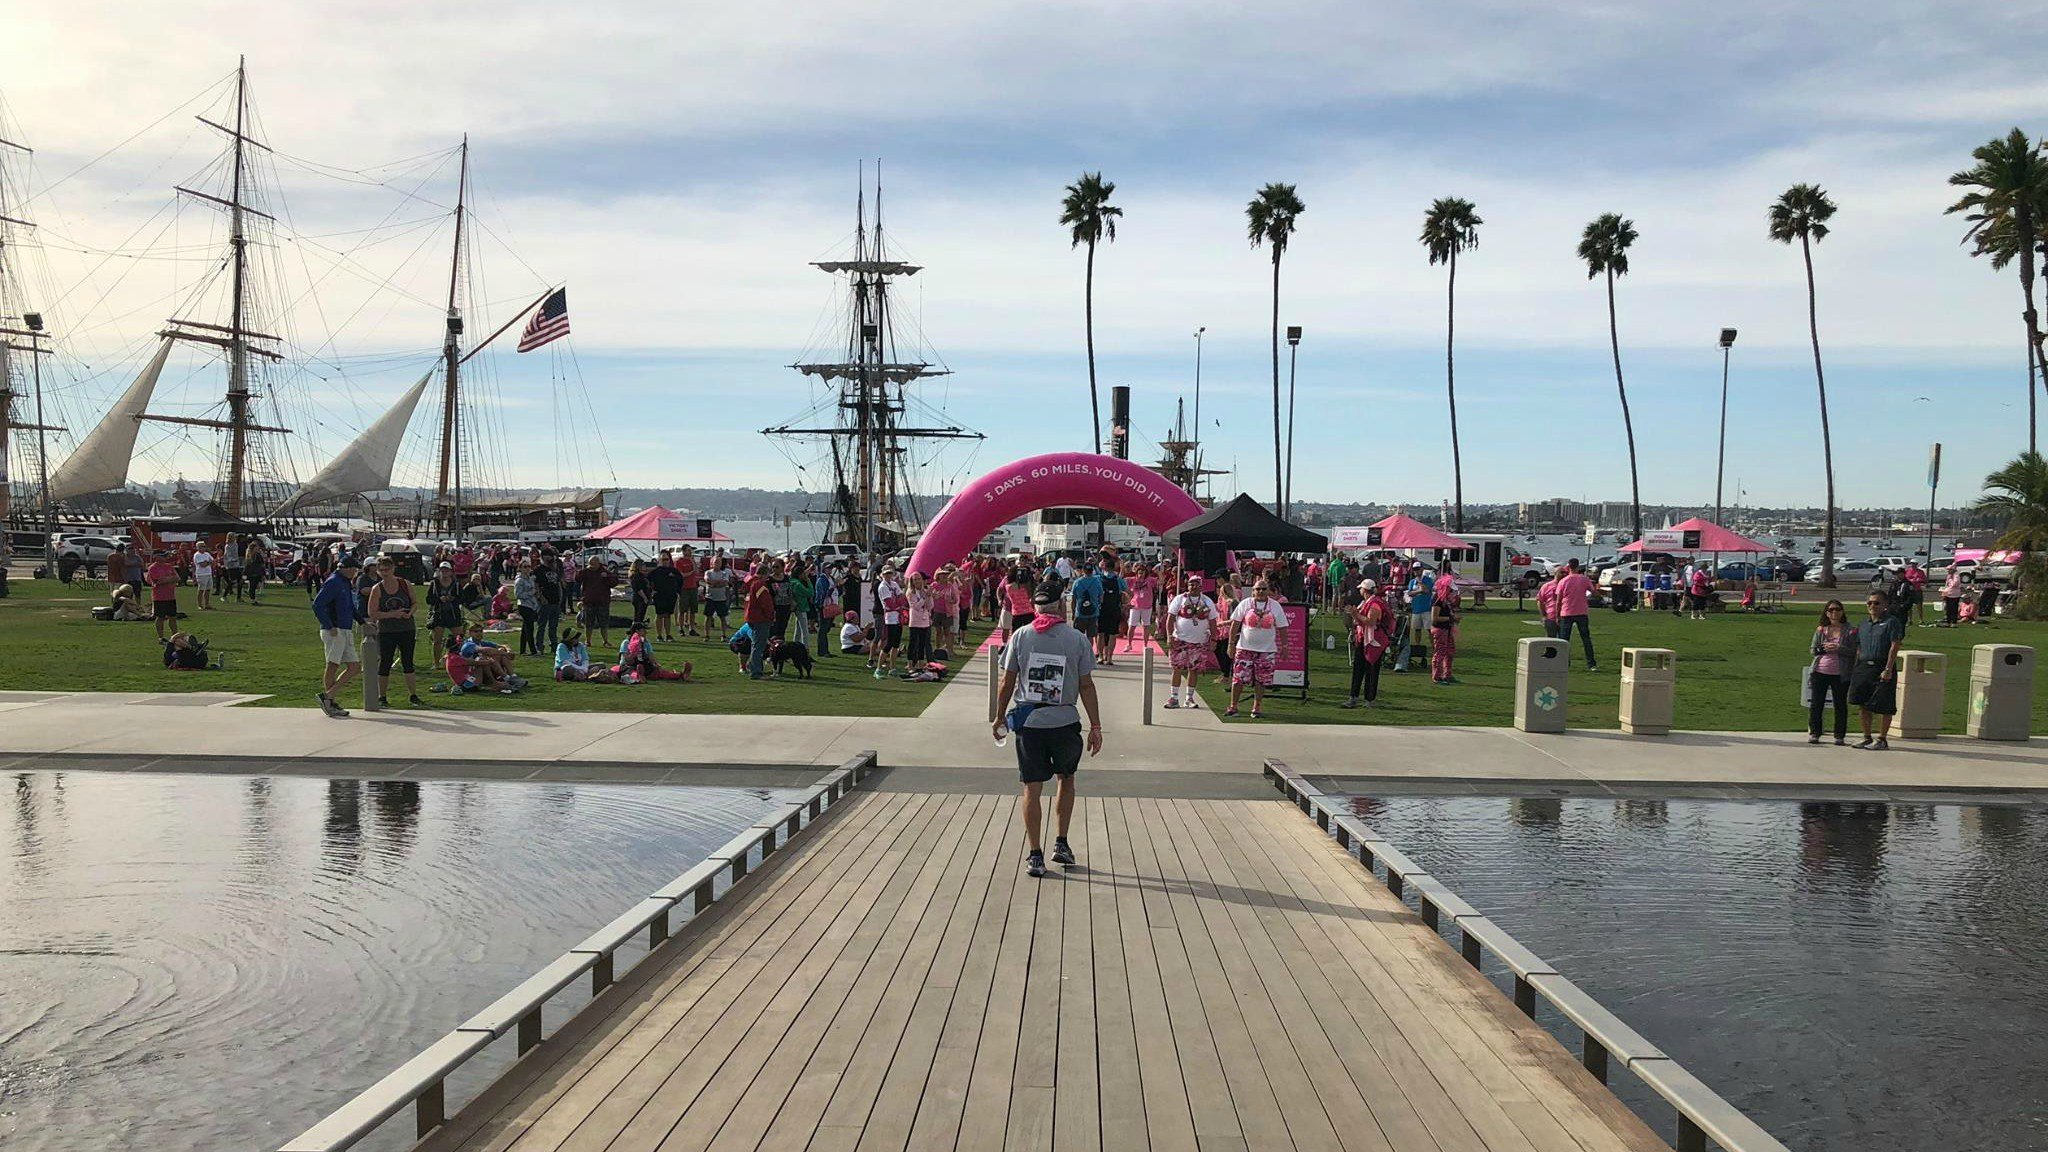 The finish line complete with an incredible view, as walkers cross the pond in front of the Star of India. (Photo by Matt Baylow)